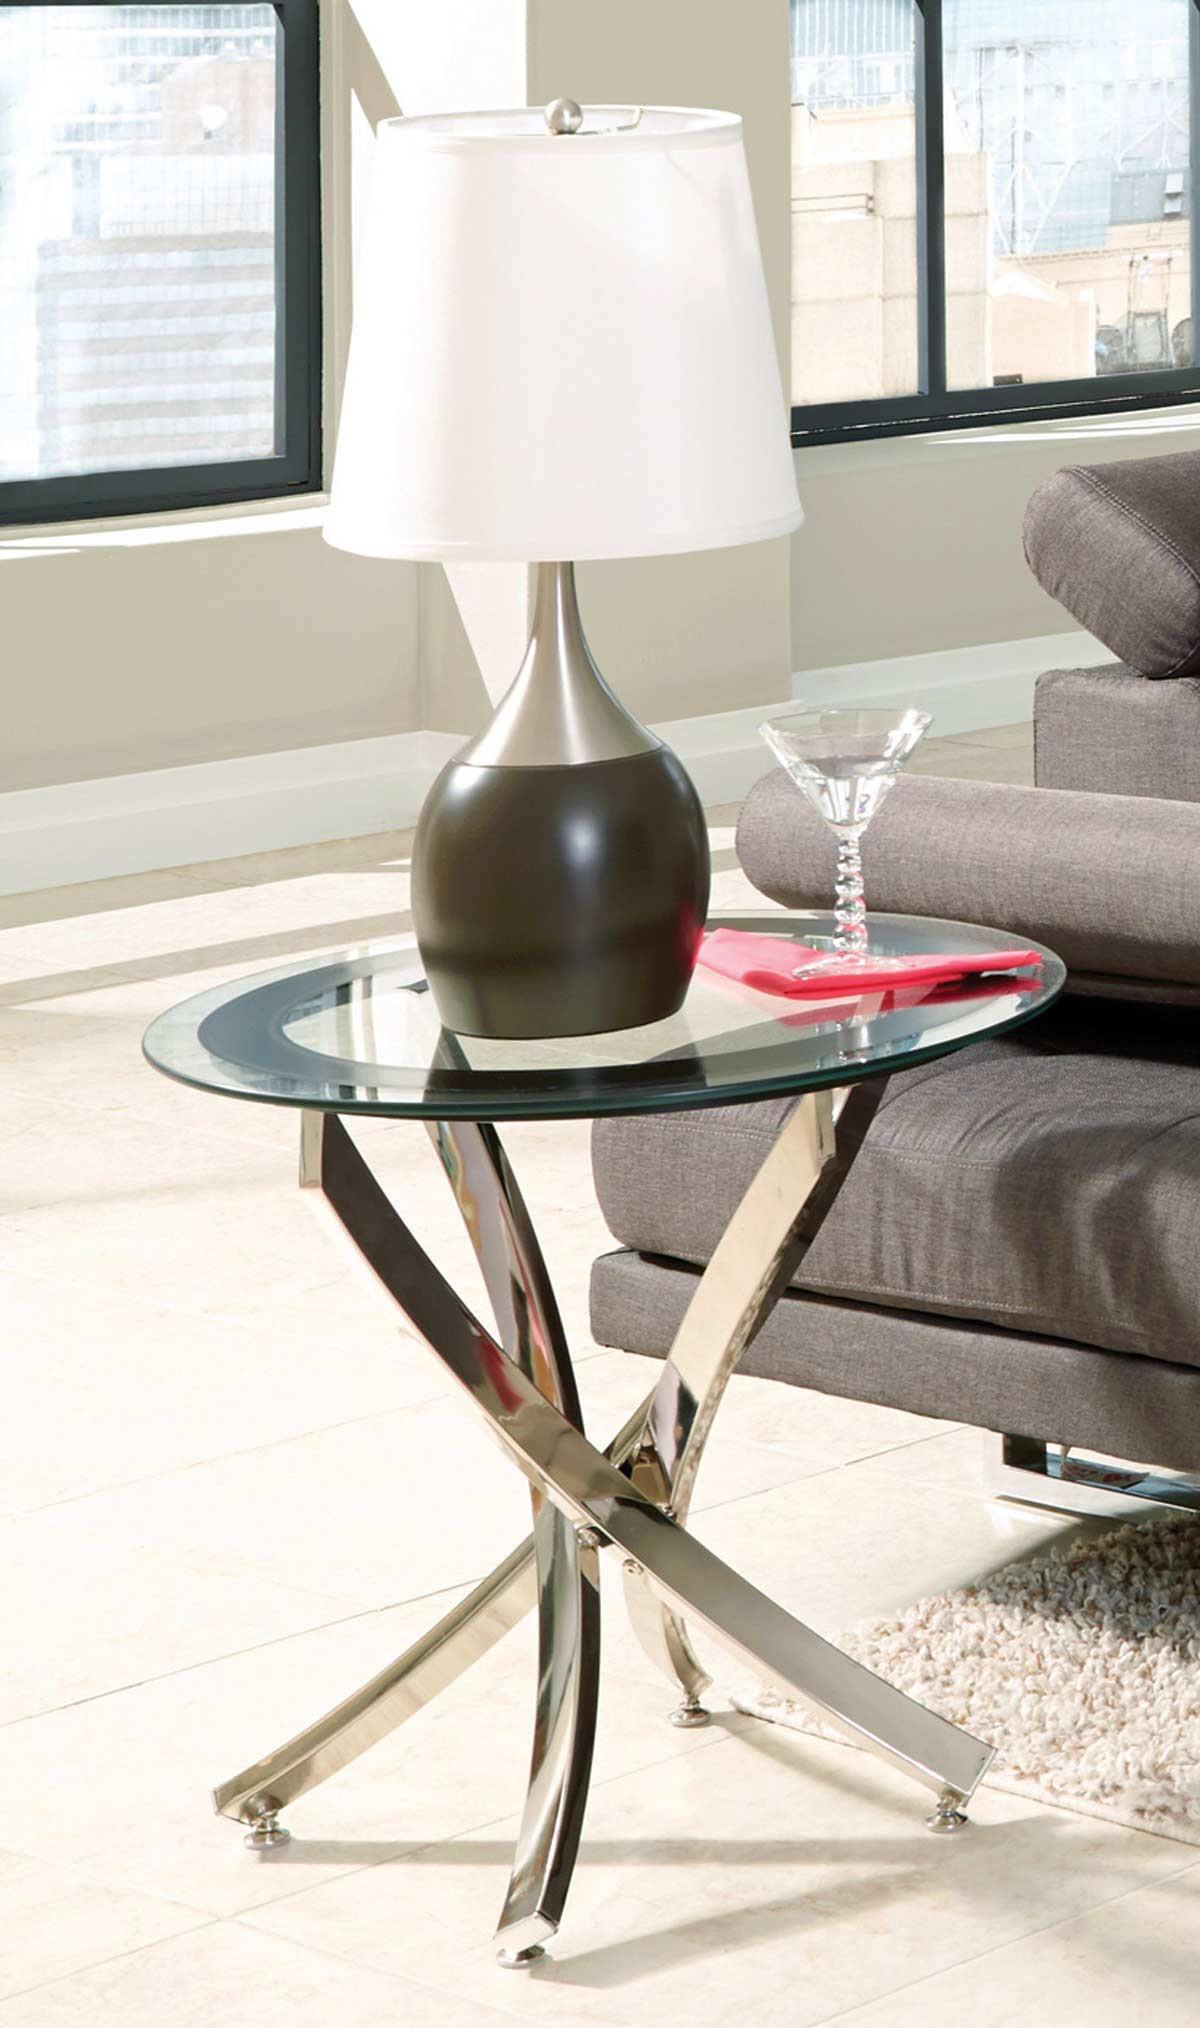 Coaster 702587 End Table - Black/Chrome